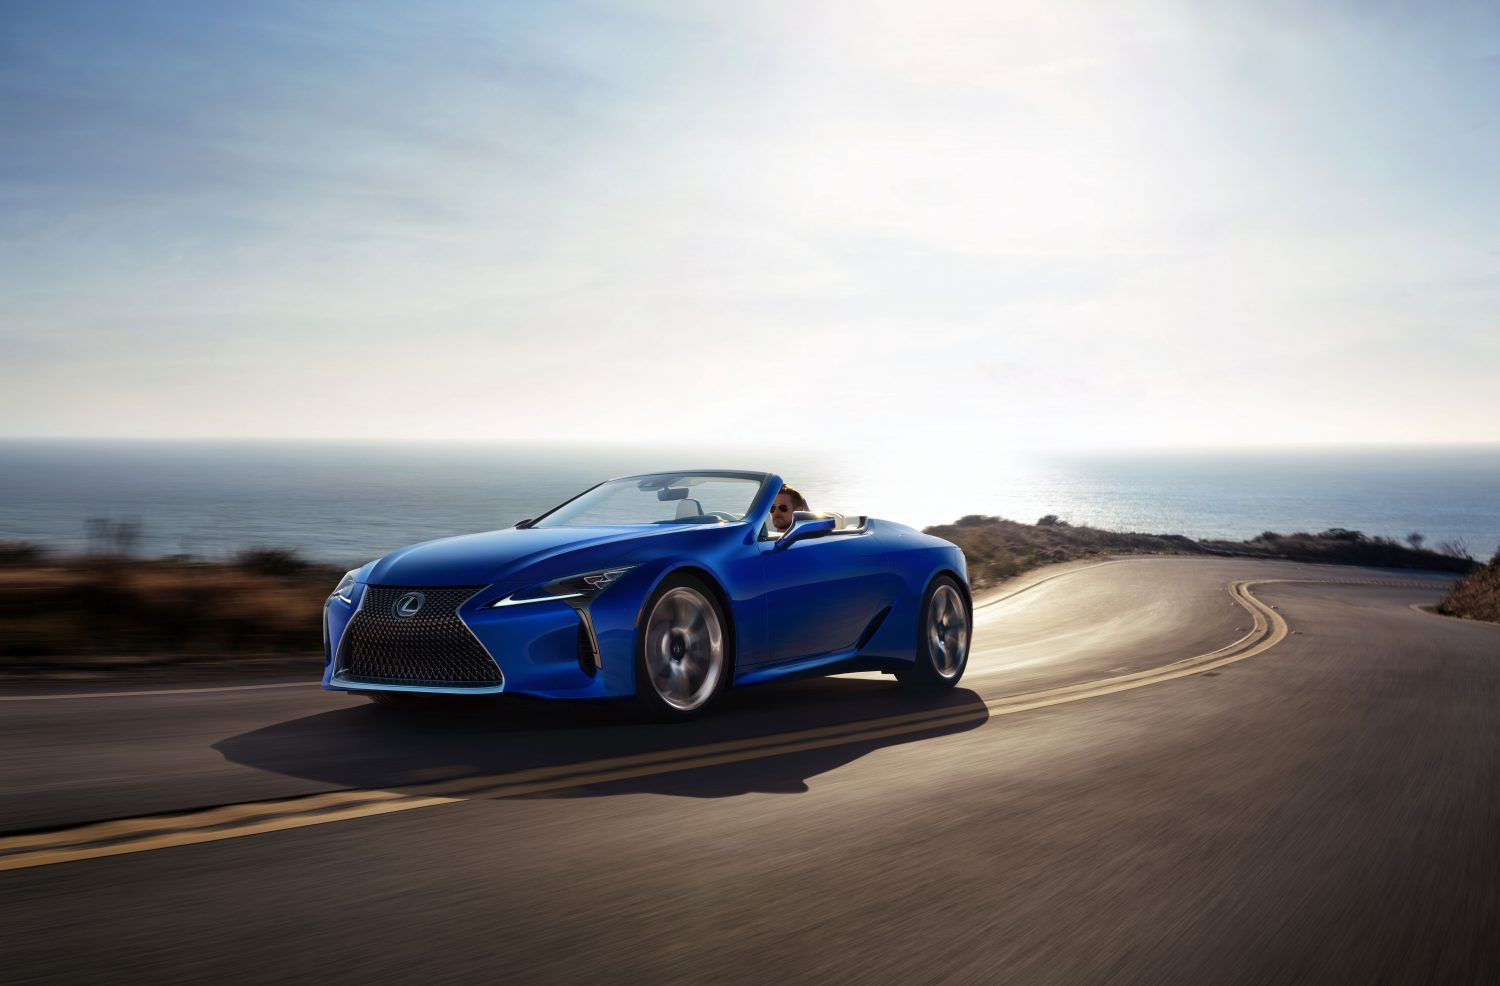 lexus_lc_convertible_limited_edition_1.jpg